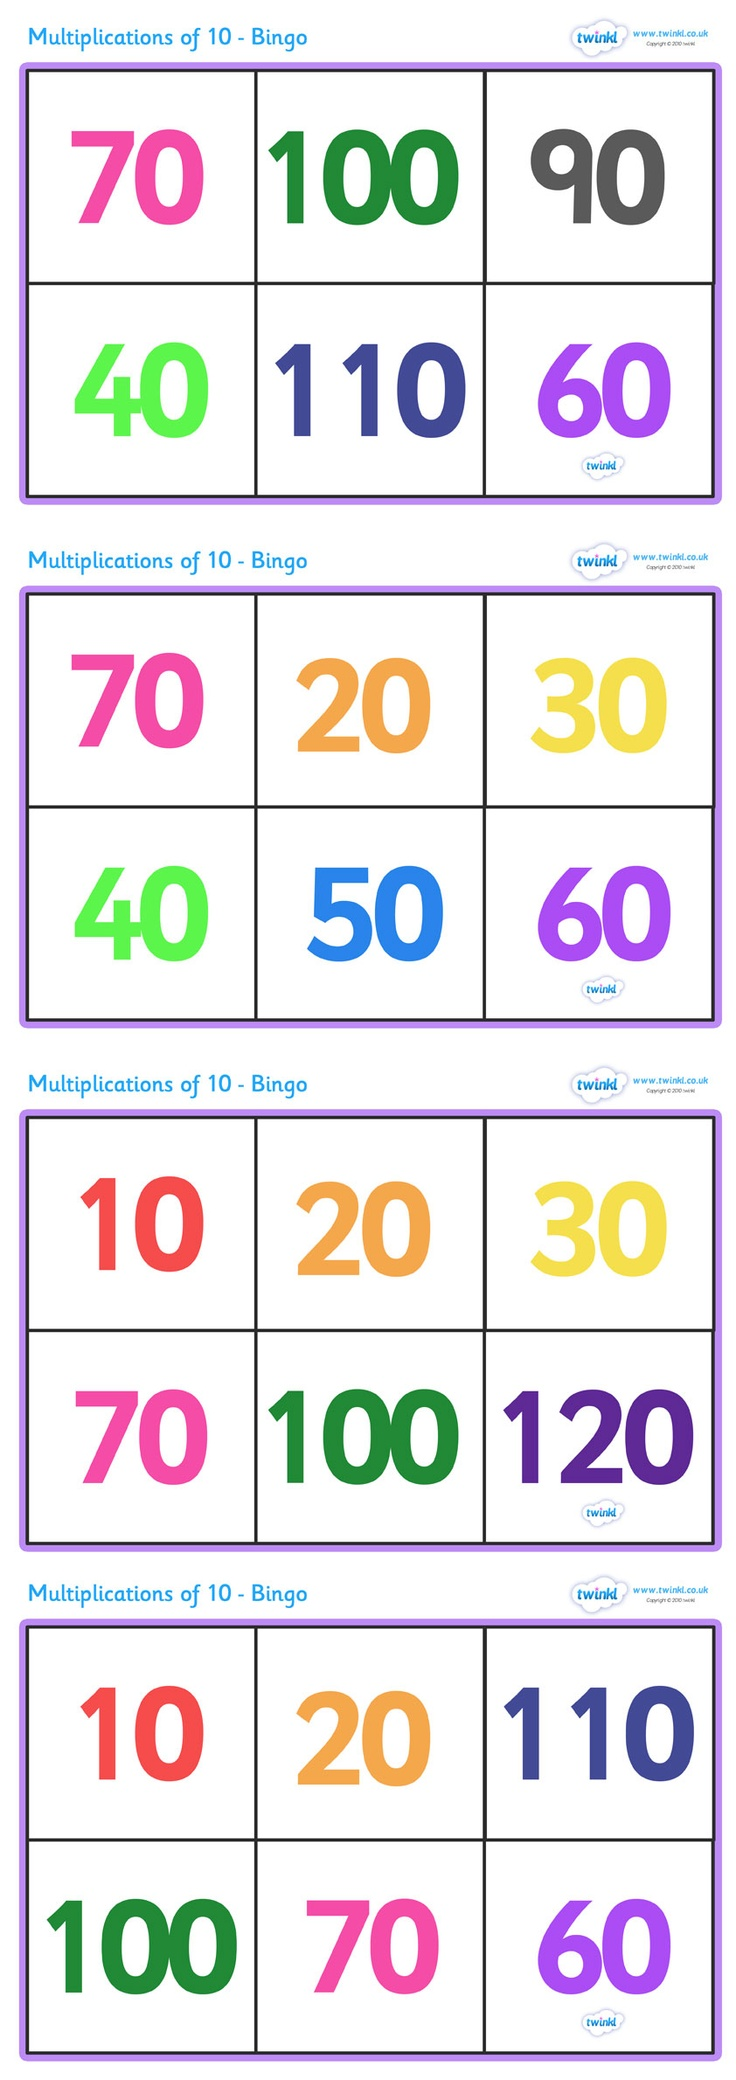 Table Salamanger Violon : Ten+Times+Table Ten Times Table Bingo - Pop over to our site at www ...